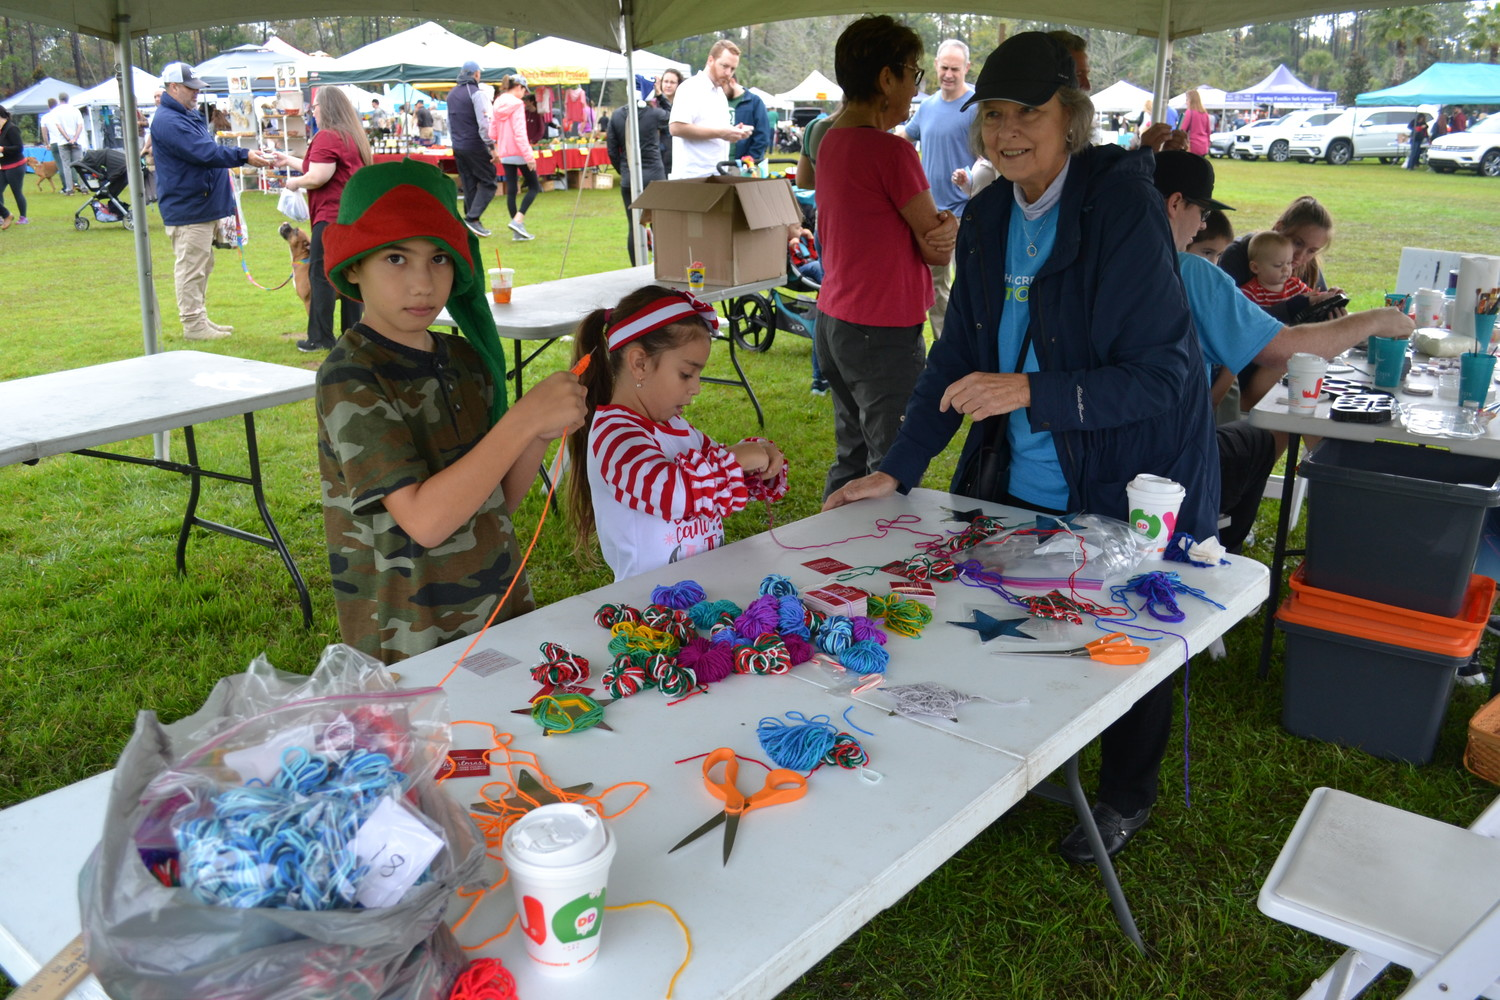 Attendees of the Farmers Market participate in arts and crafts activities.